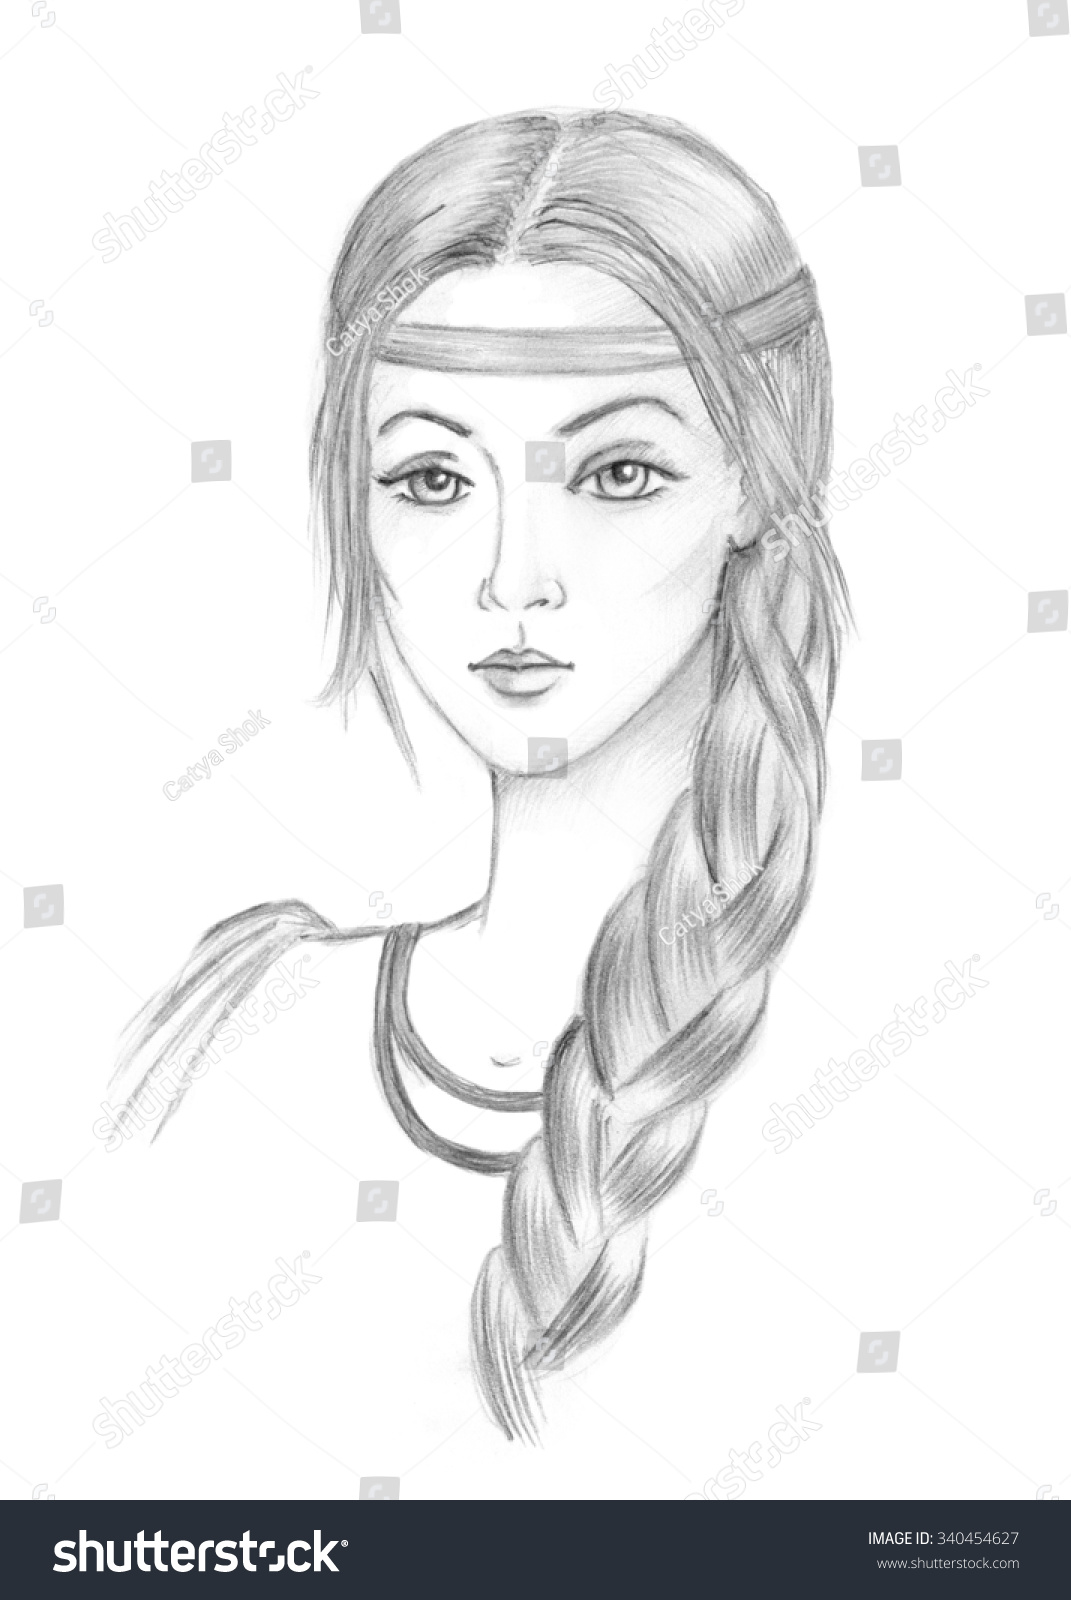 Beautiful slavic girl ukrainian russian belarus young girl pencil sketch